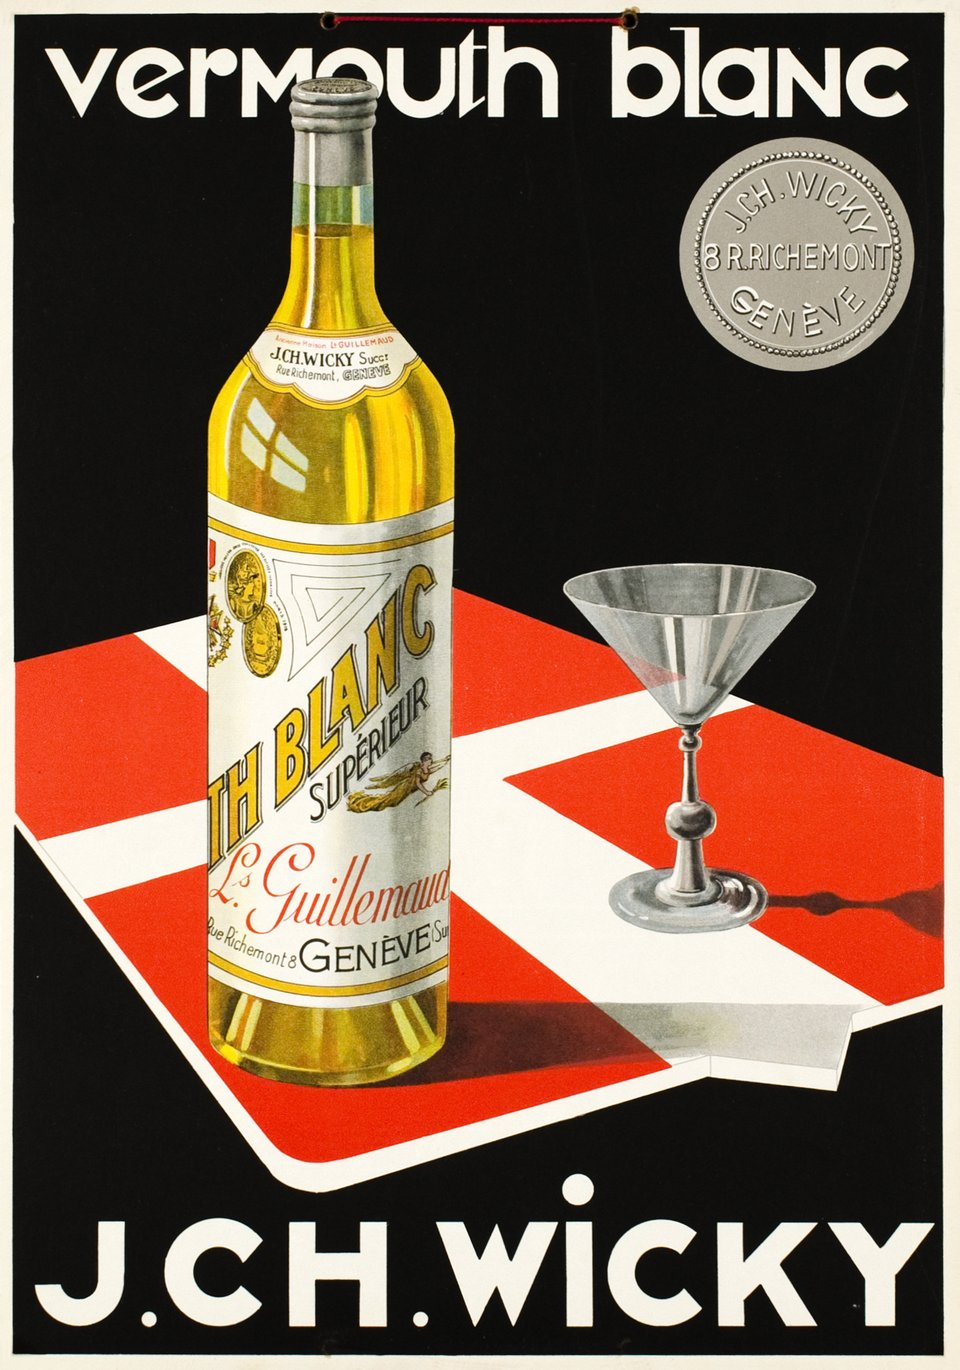 Vermouth blanc J.CH. Wicky – Vintage poster –  ANONYME – 1930